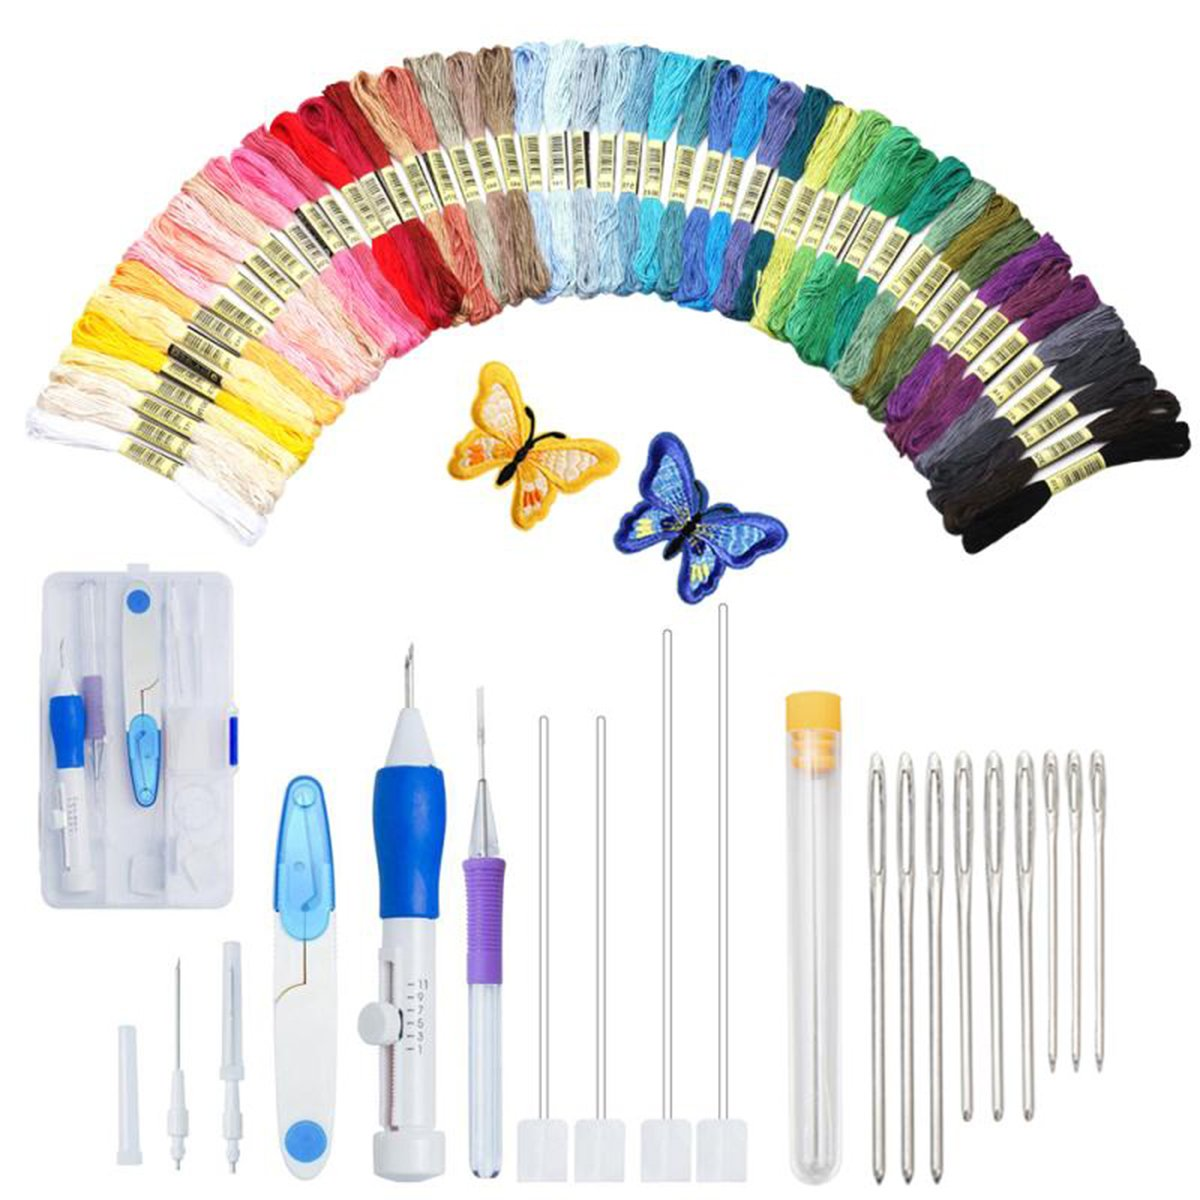 Magic Embroidery Pen Kit, Embroidery Pen Punch Needle Craft Tool Including 50 Color Threads and 9 Pieces Large-Eye Blunt Needles for Embroidery Threaders Unihubys